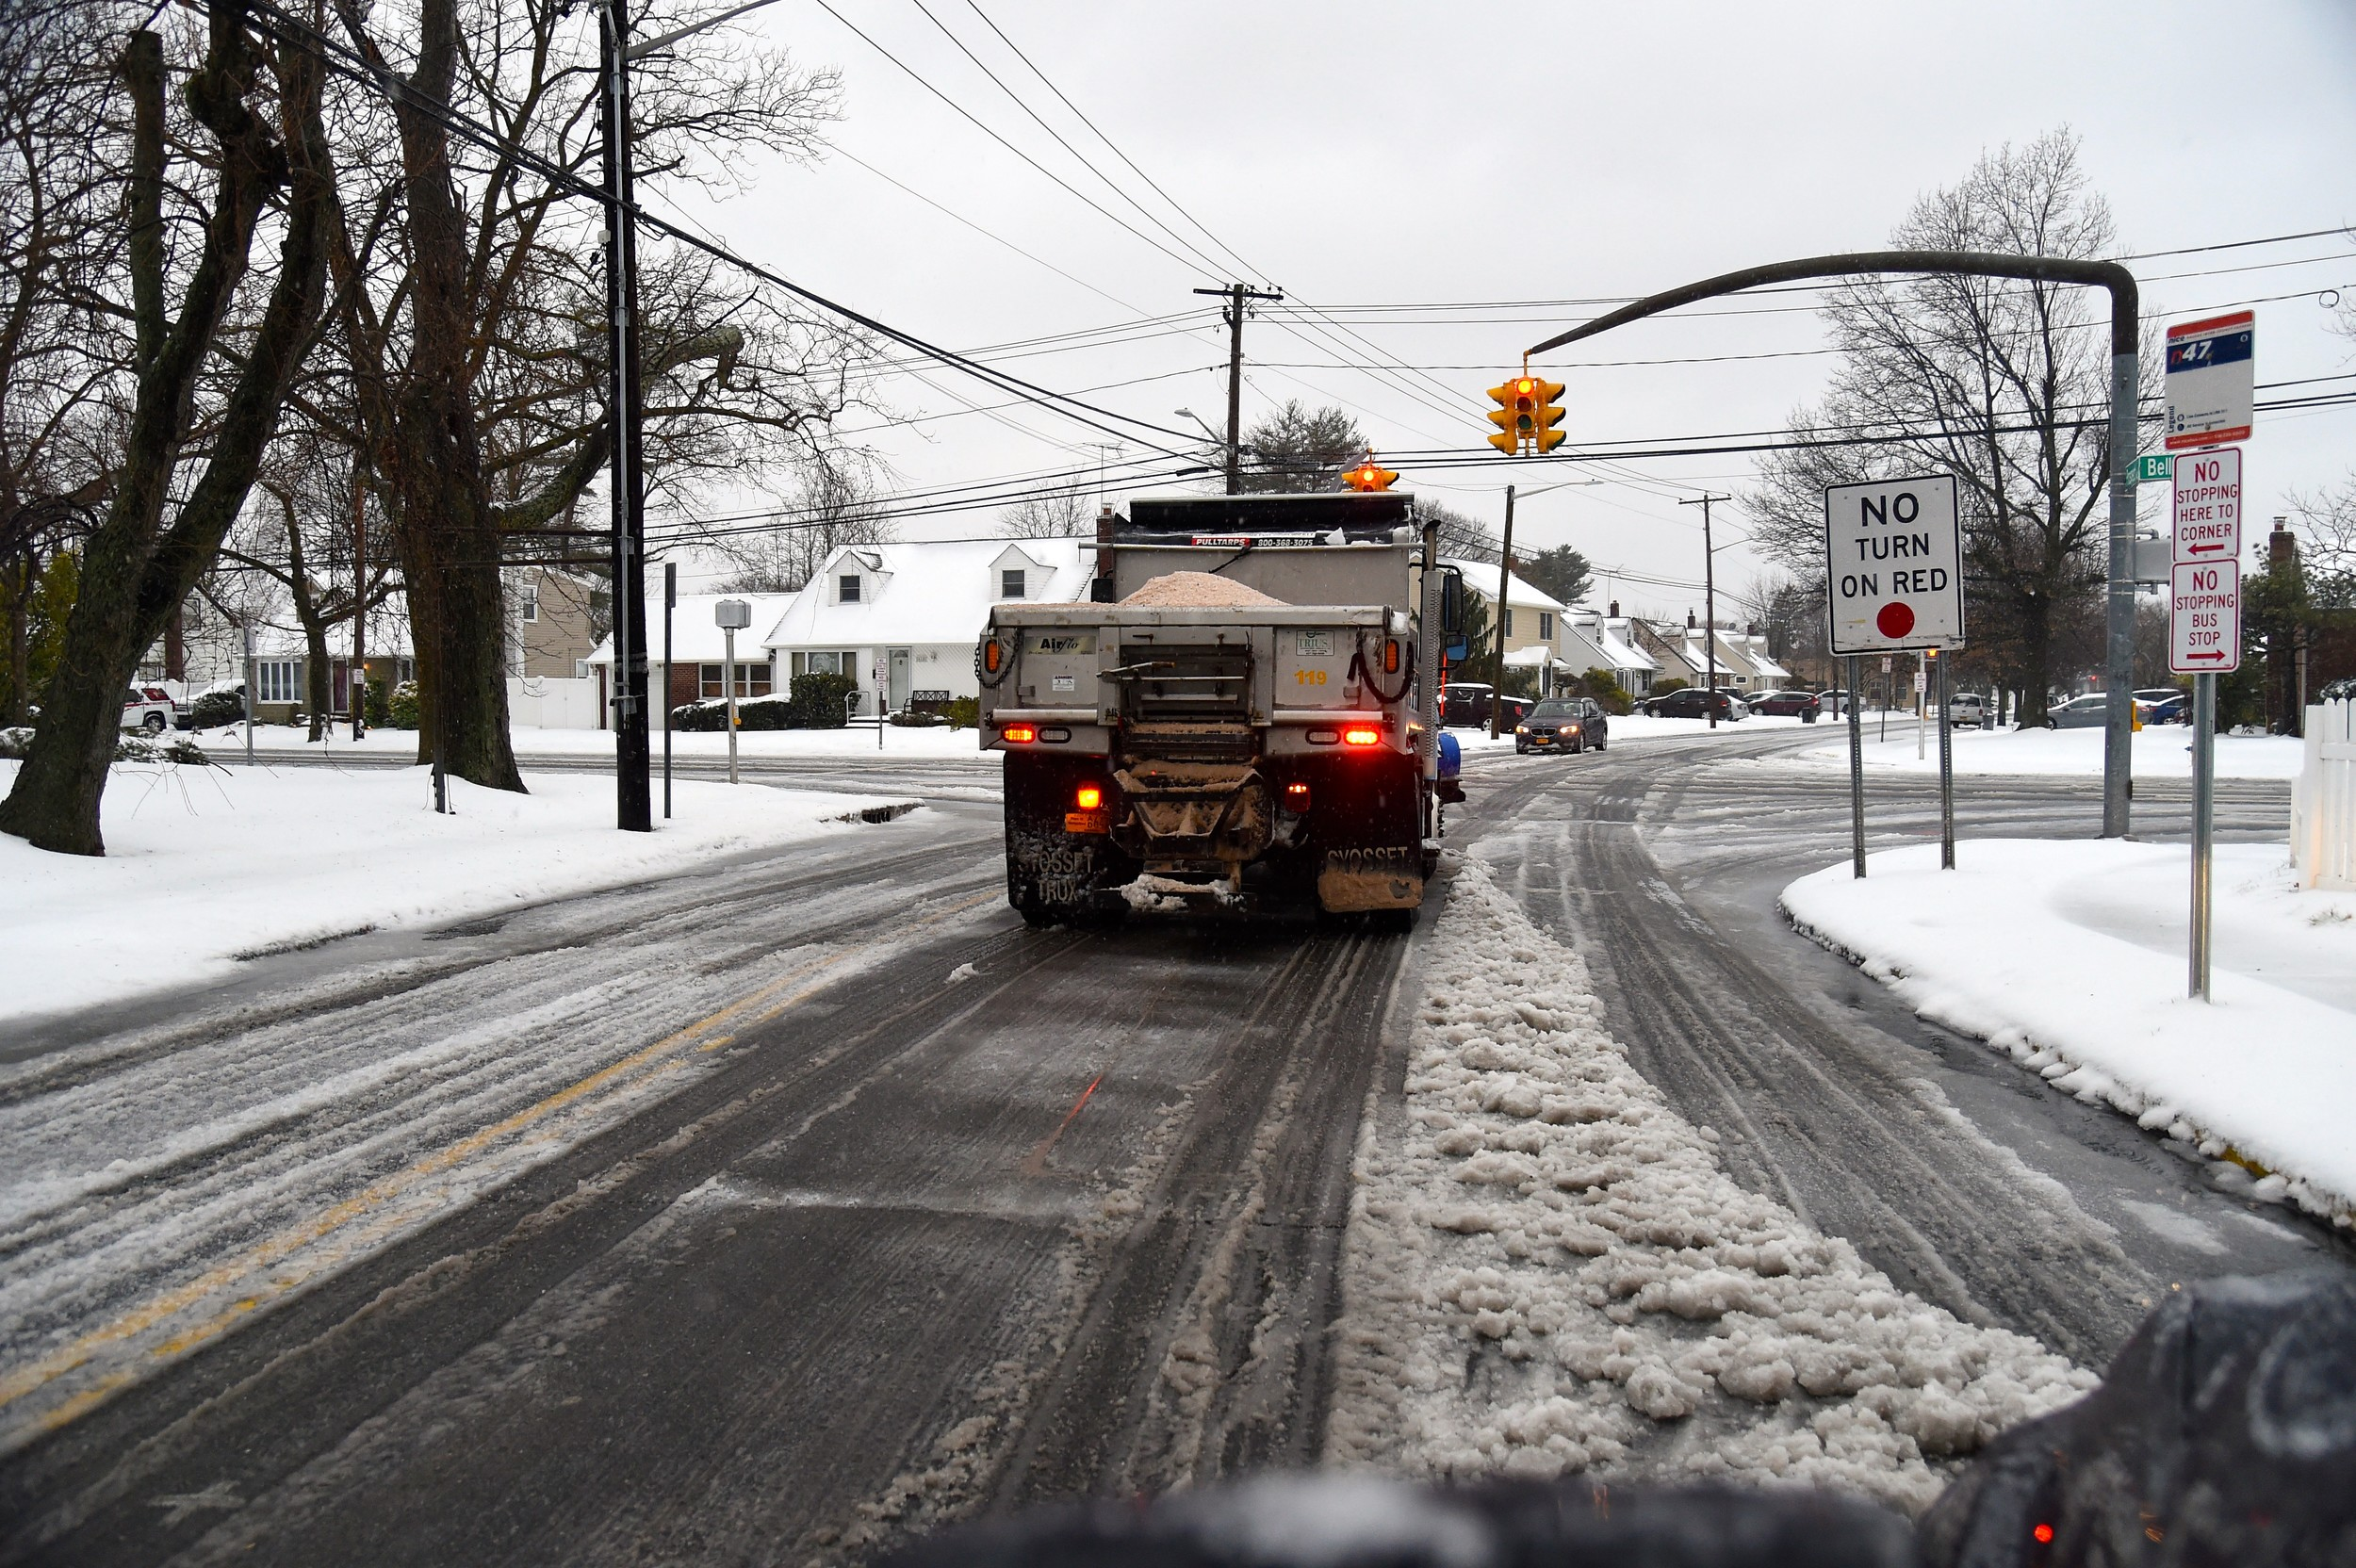 Sand and salt trucks were out spraying down streets, like this one in East Meadow